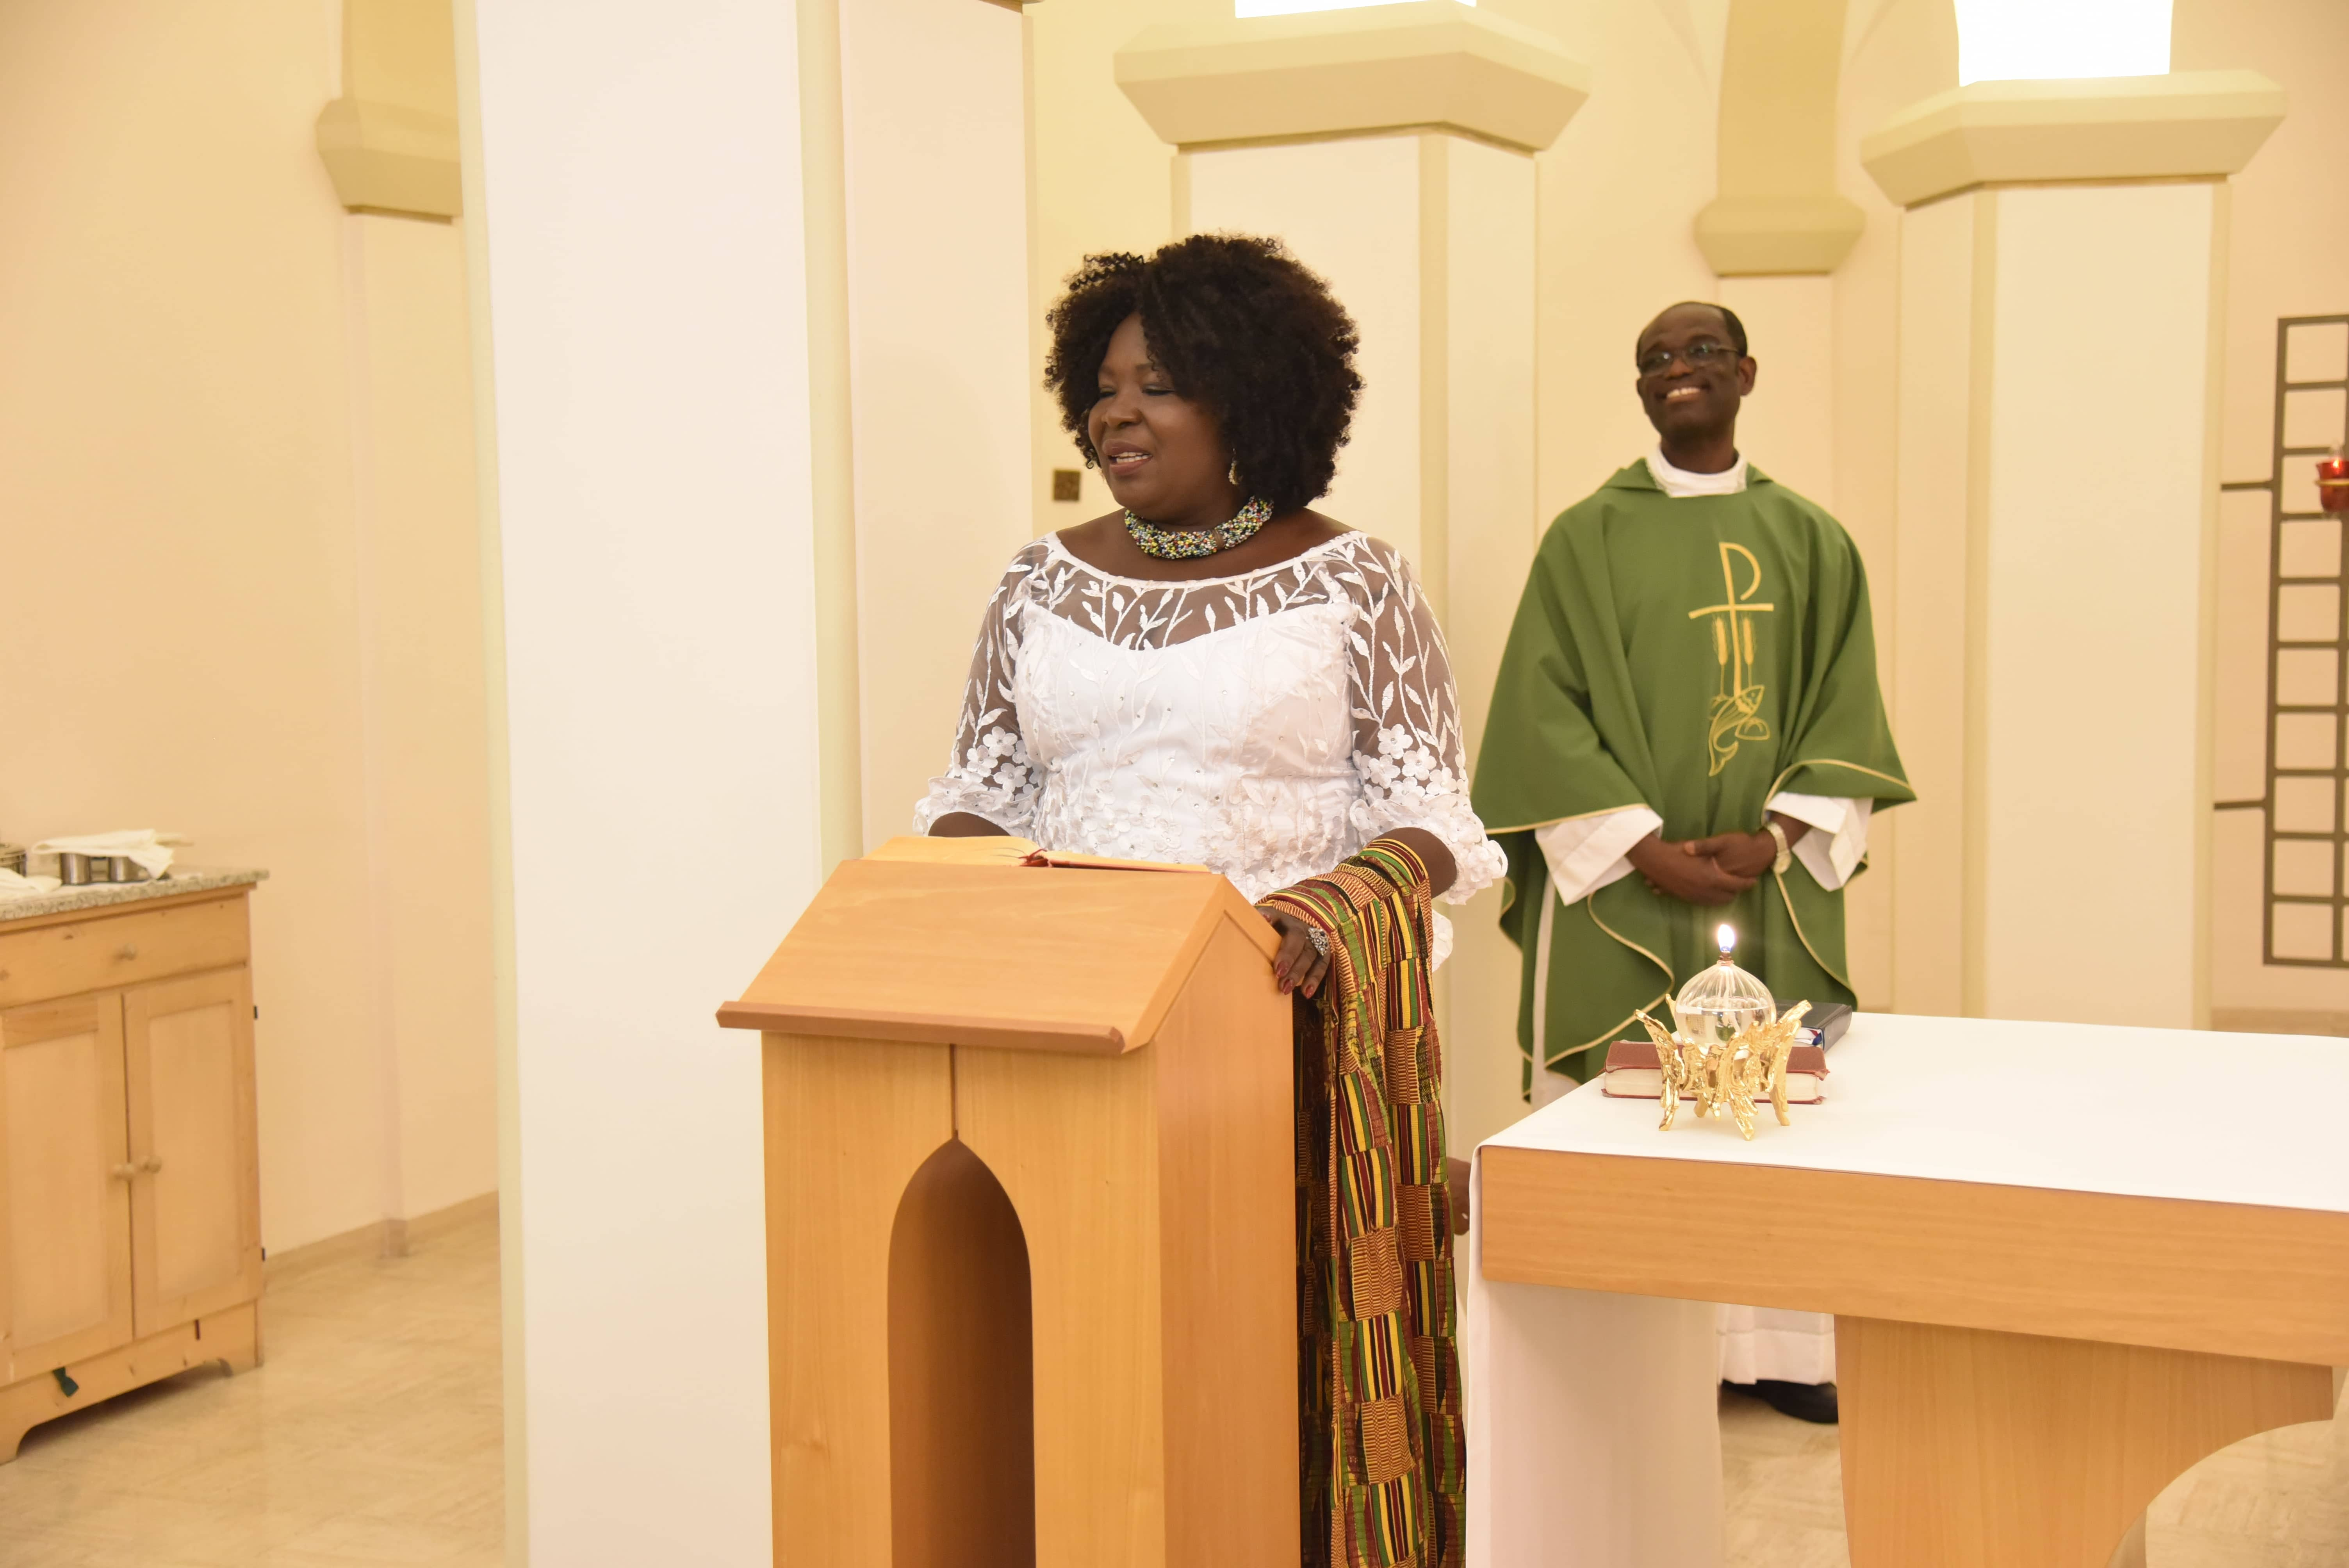 THANKSGIVING SERVICE IN HONOUR OF HER EXCELLENCY,  MS. PAULINA PATIENCE ABAYAGE, AMBASSADOR EXTRAORDINARY AND PLENIPOTENTIARY OF THE  REPUBLIC OF GHANA TO THE REPUBLIC OF ITALY